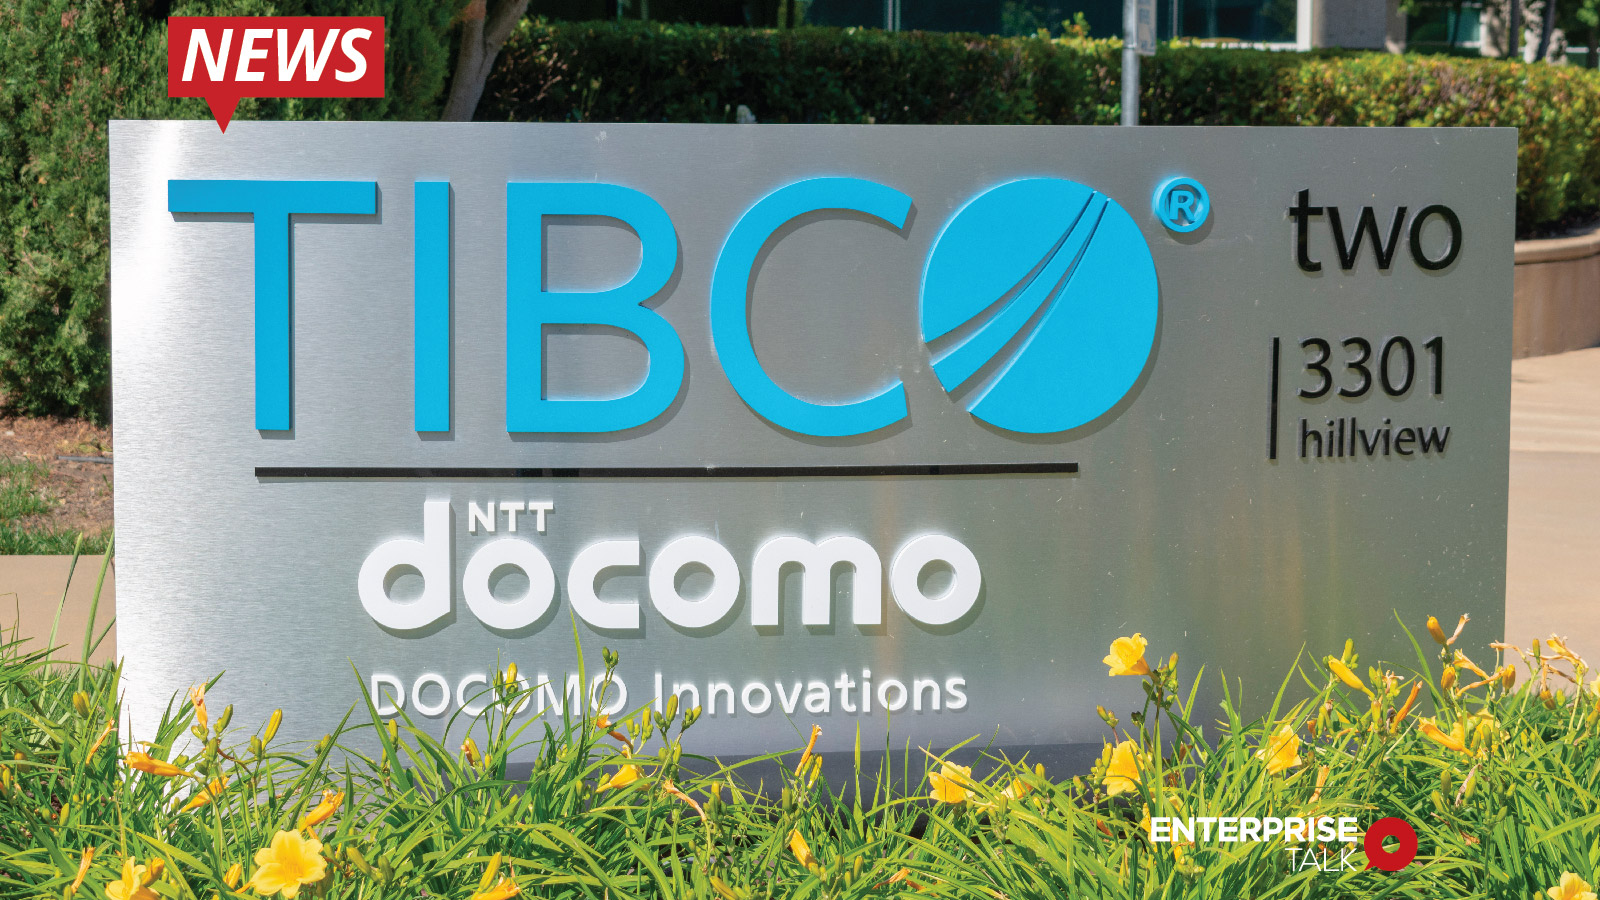 TIBCO, Microsoft, Missing Maps Initiative, Cloud-Native, AI-Driven Solutions, Hybrid Integration, API management, and analytics